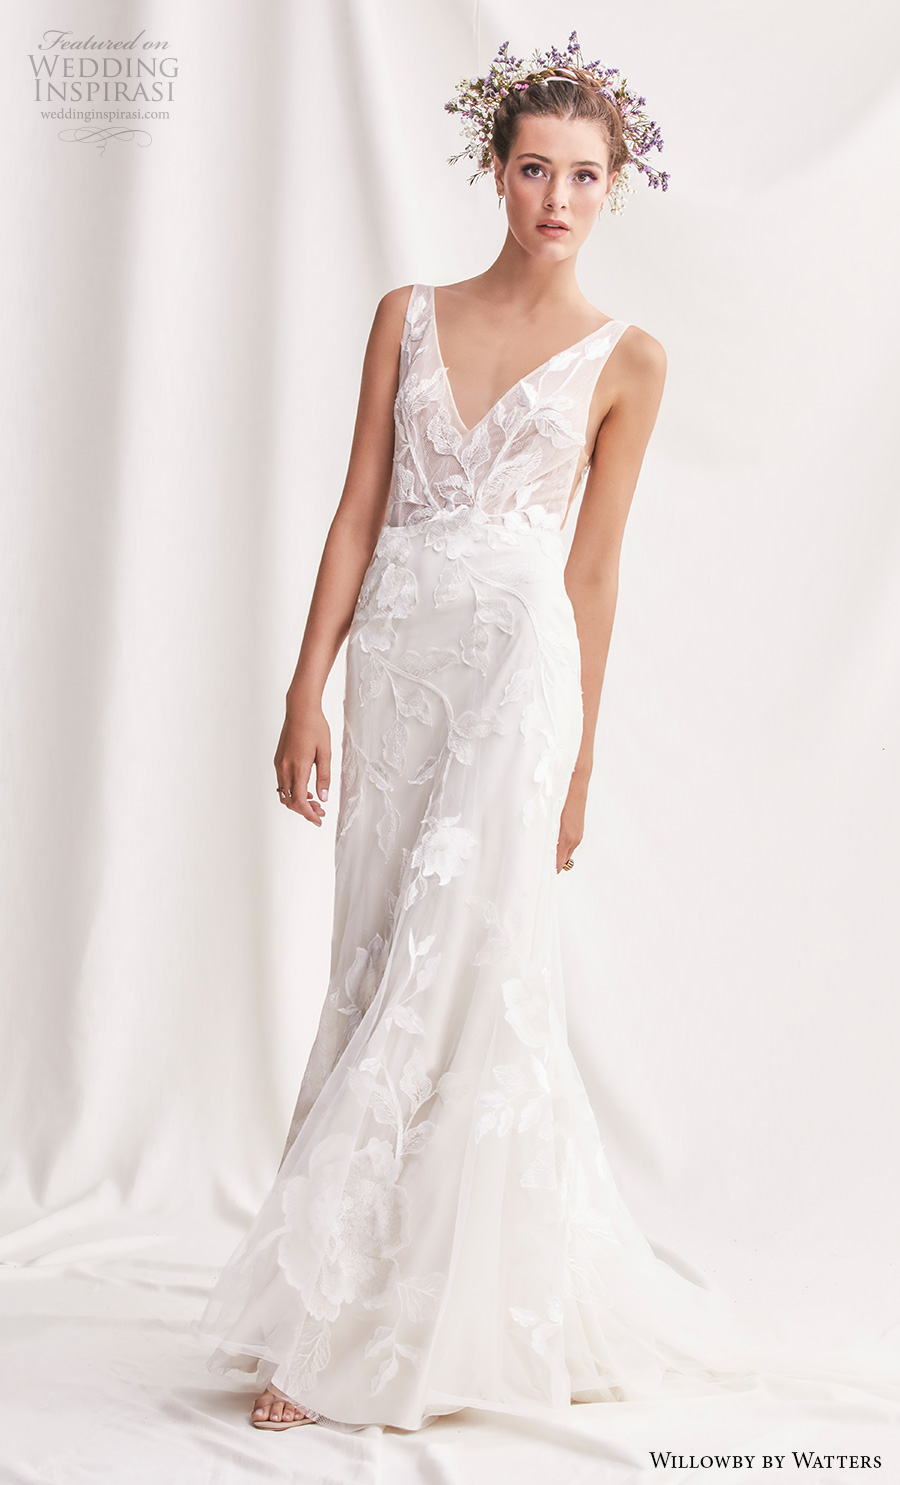 willowby by watters spring 2019 bridal sleeveless v neck full embellishment romantic fit and flare wedding dress v back medium train (9) mv